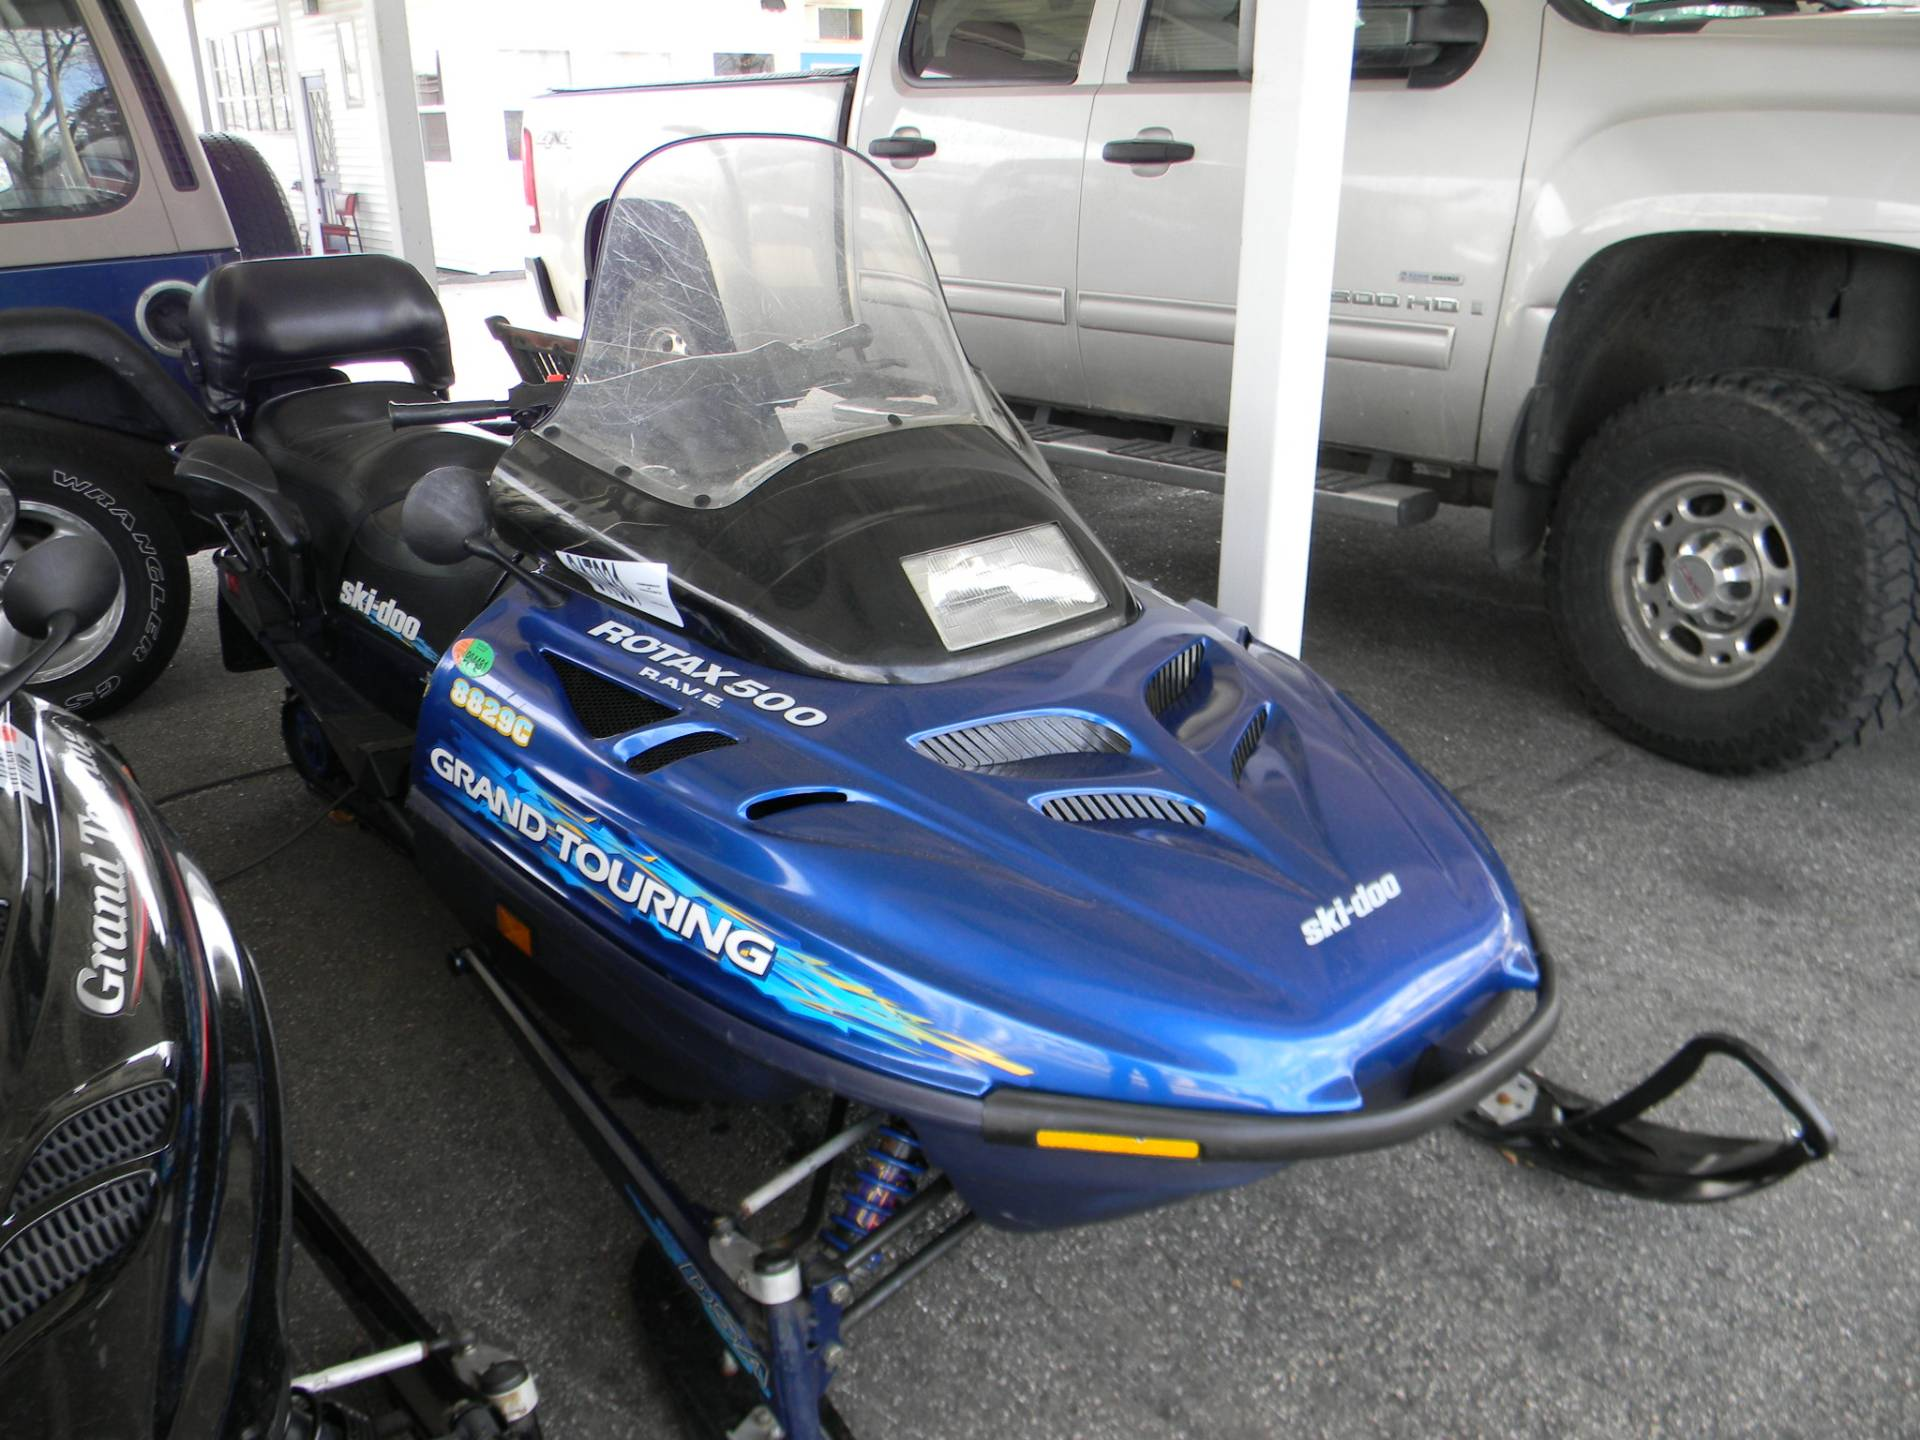 1998 Ski-Doo GRAND TOURING 500 in Springfield, Massachusetts